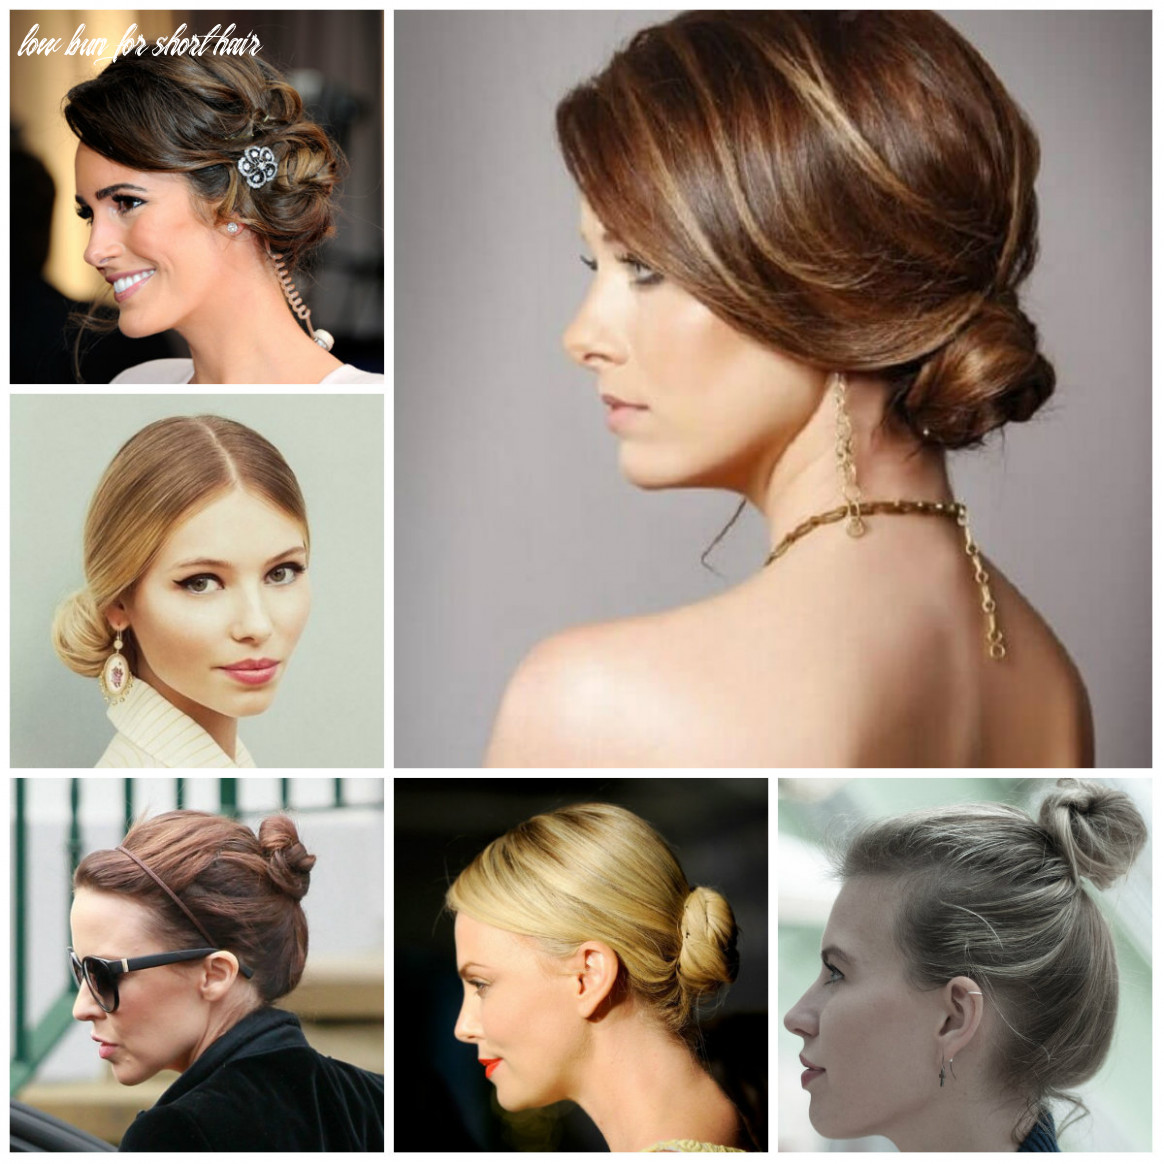 Bun Hairstyles for Short Hair 8 | 8 Haircuts, Hairstyles and ...